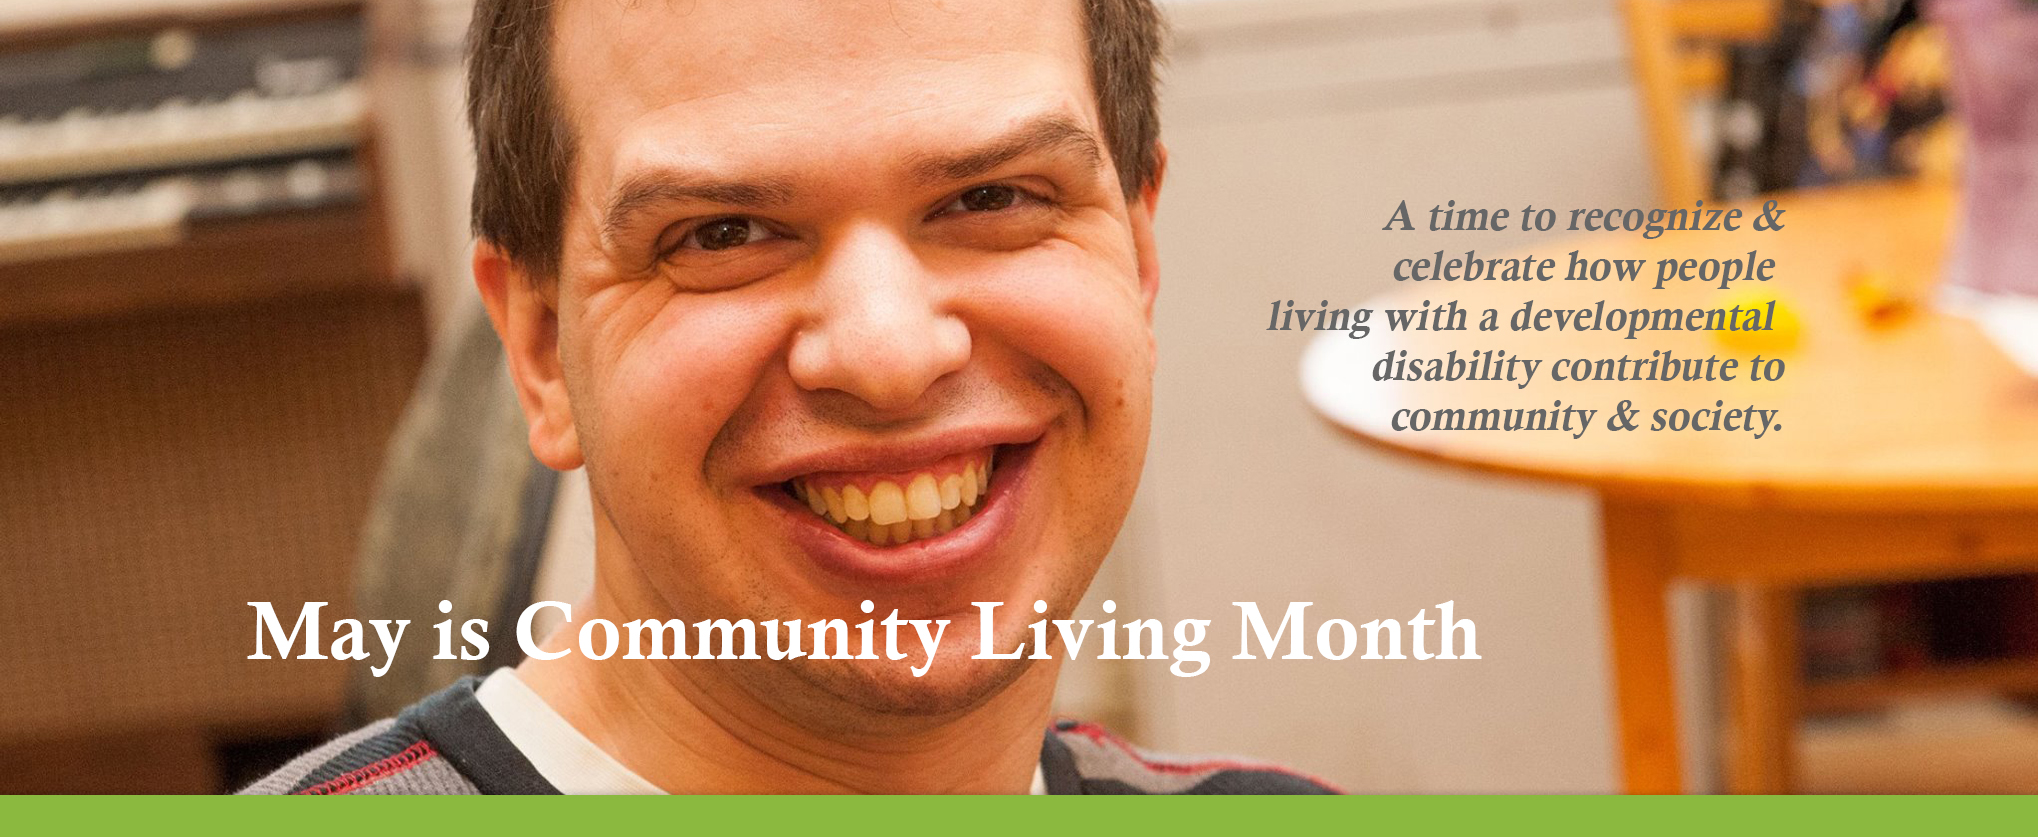 may is community living month mine